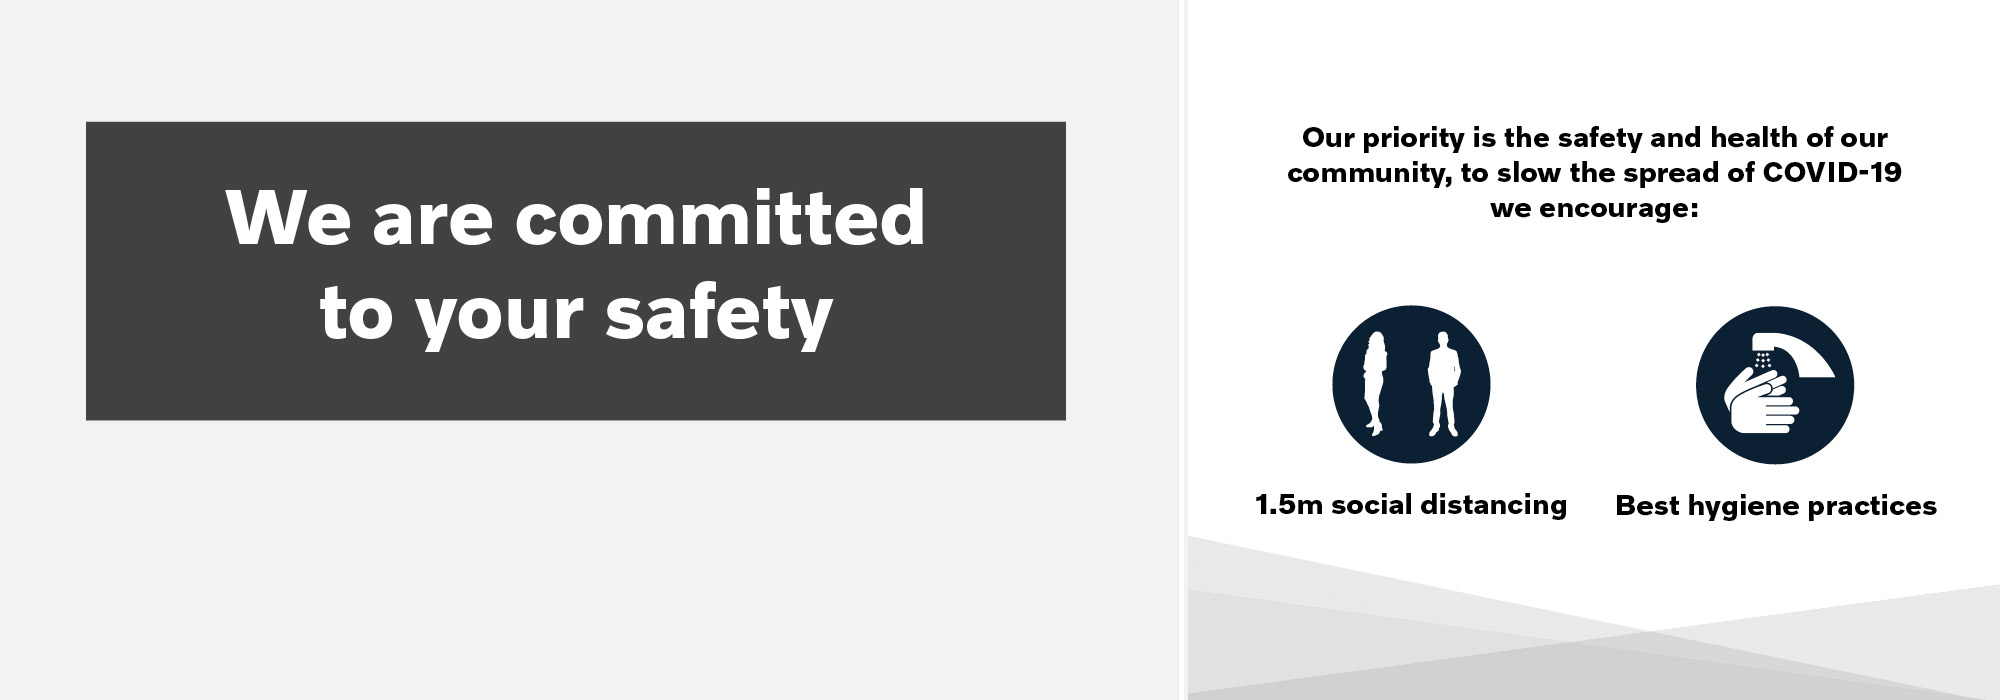 AT SUTTONS, WE ARE COMMITTED TO YOUR SAFETY